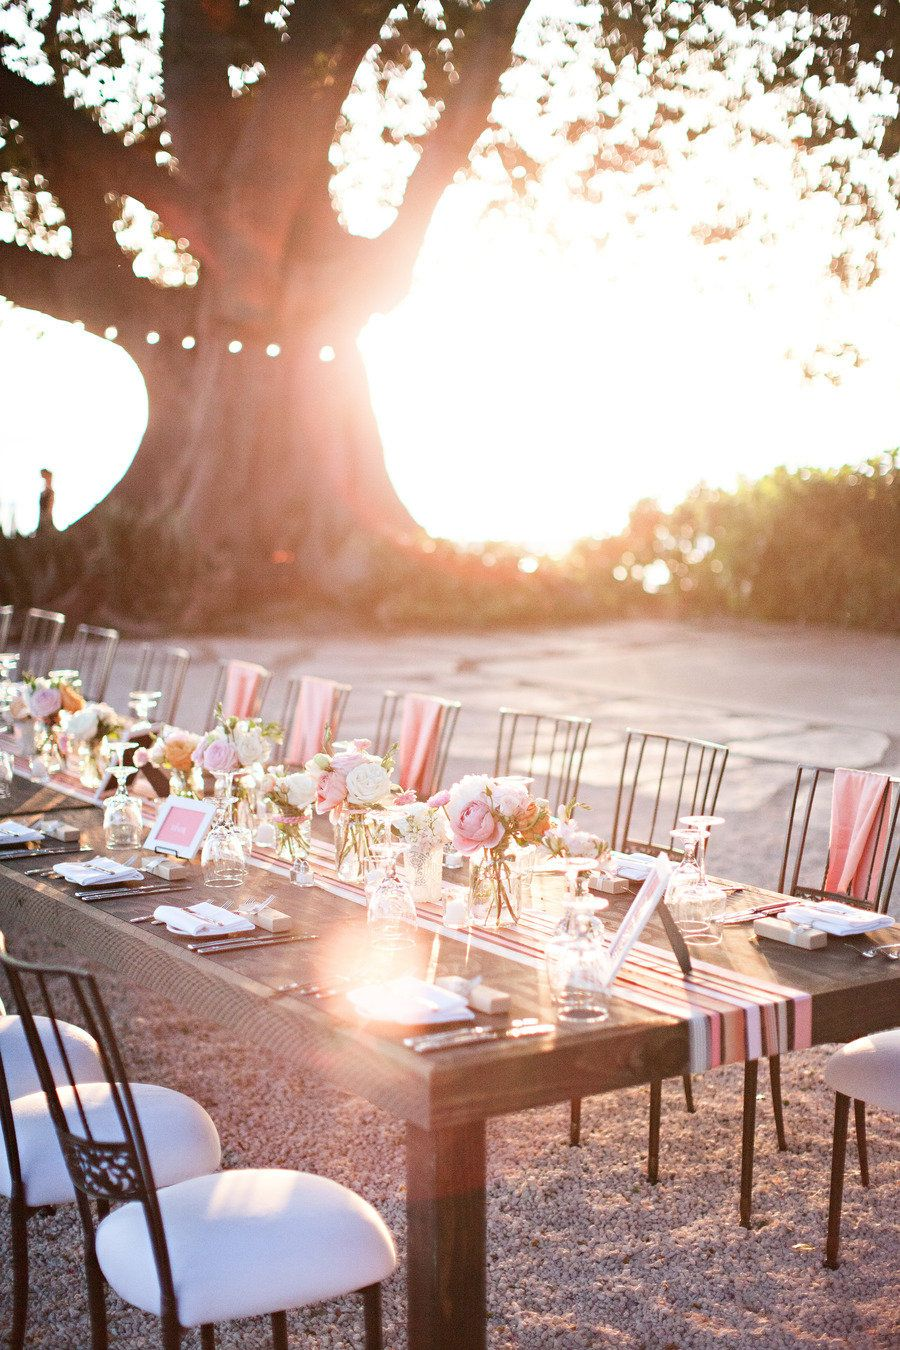 Maui Wedding By Gina Meola And Belle Destination Maui Weddings Wedding Table Wedding Decorations